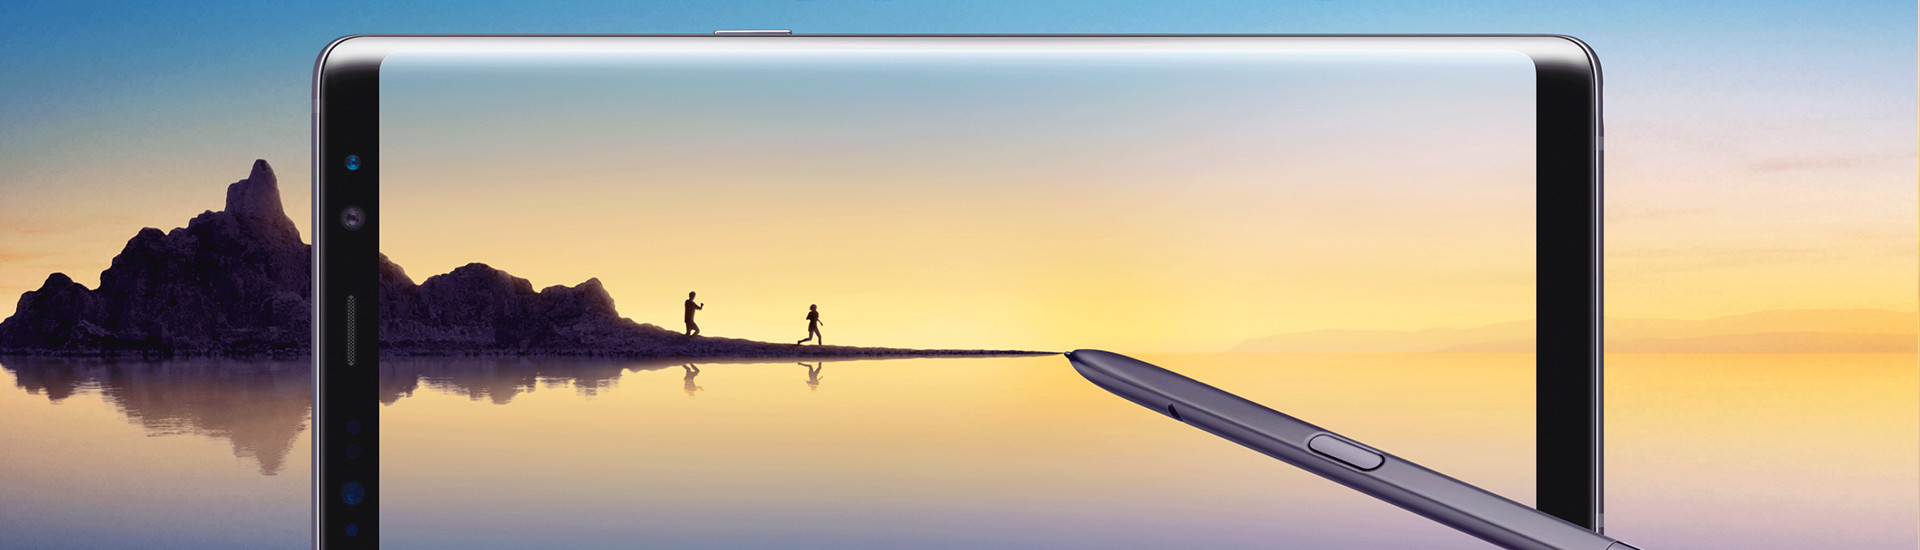 €739 για Samsung Note 8 Dual (64GB)